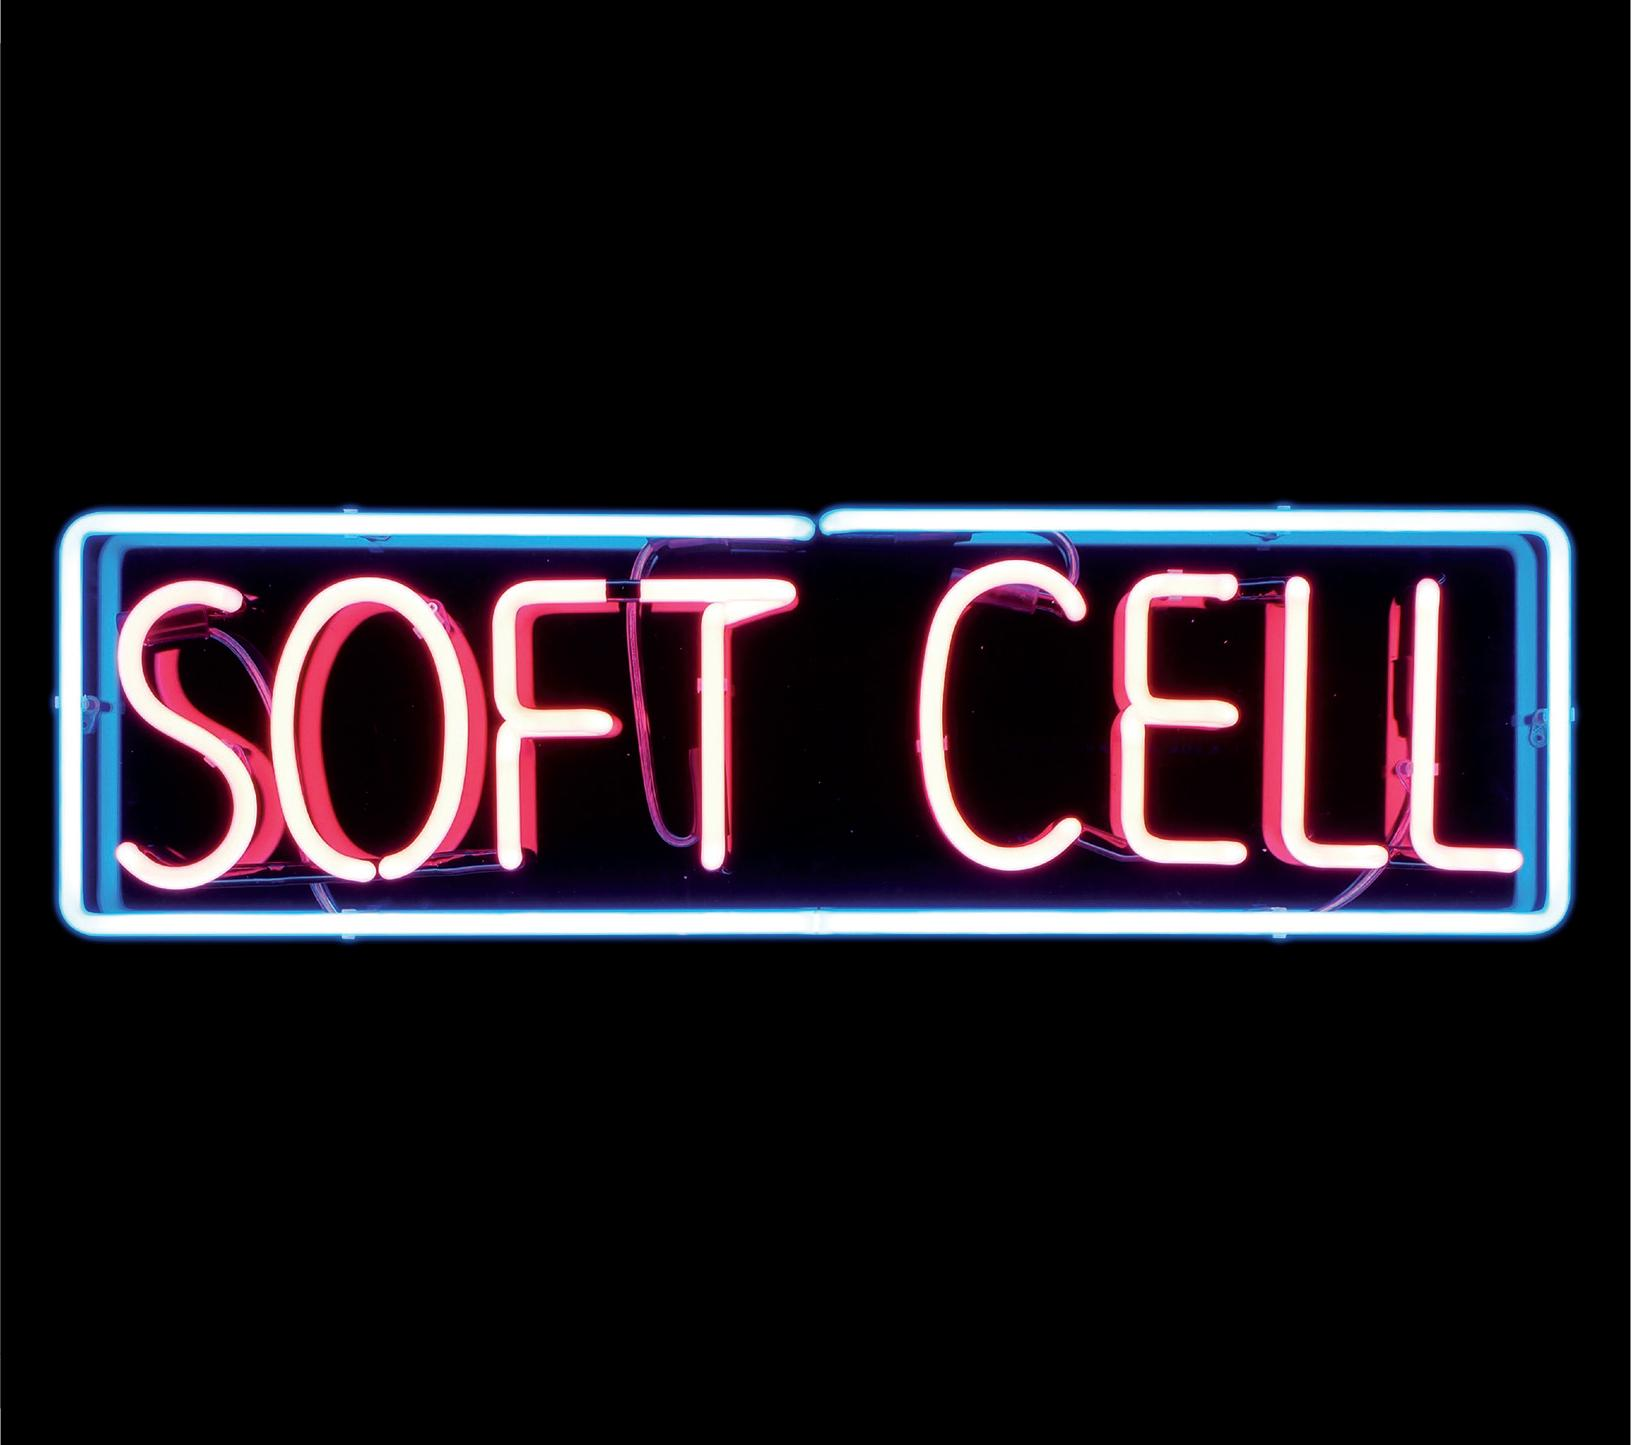 Soft Cell - To Show You I've Been There    - (Hardback Book)